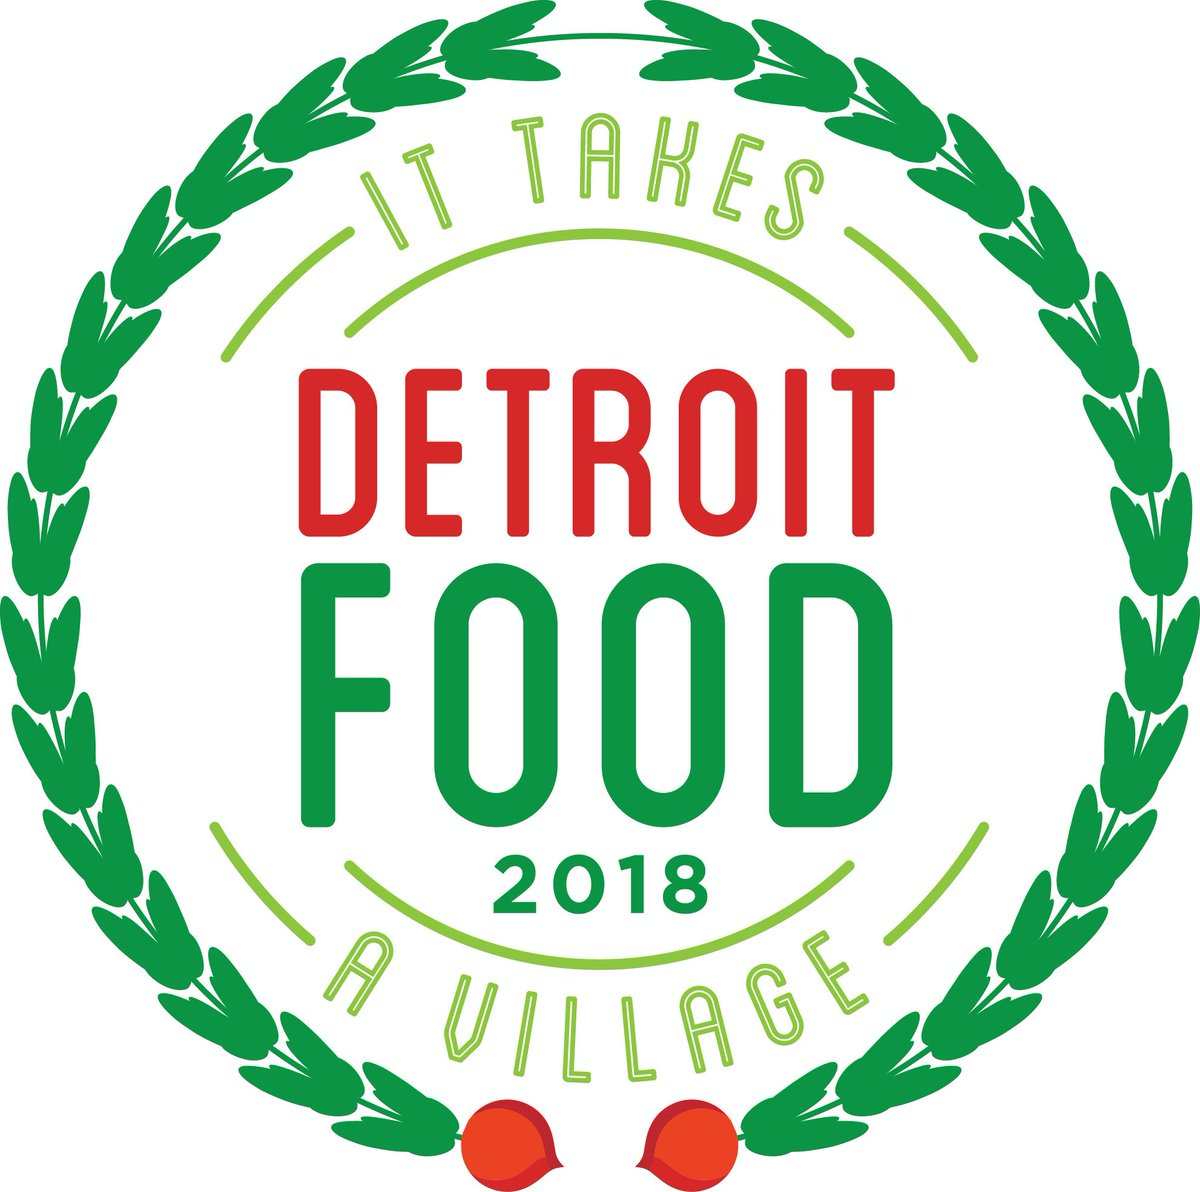 Detroit Food Policy Council On Twitter Thank You To Every Speaker Volunteer Guest Sponsor And Everyone In Between Who Participated In Some Form Of The Summit We Appreciate You All Greatly Https T Co Ayrnftr9gc